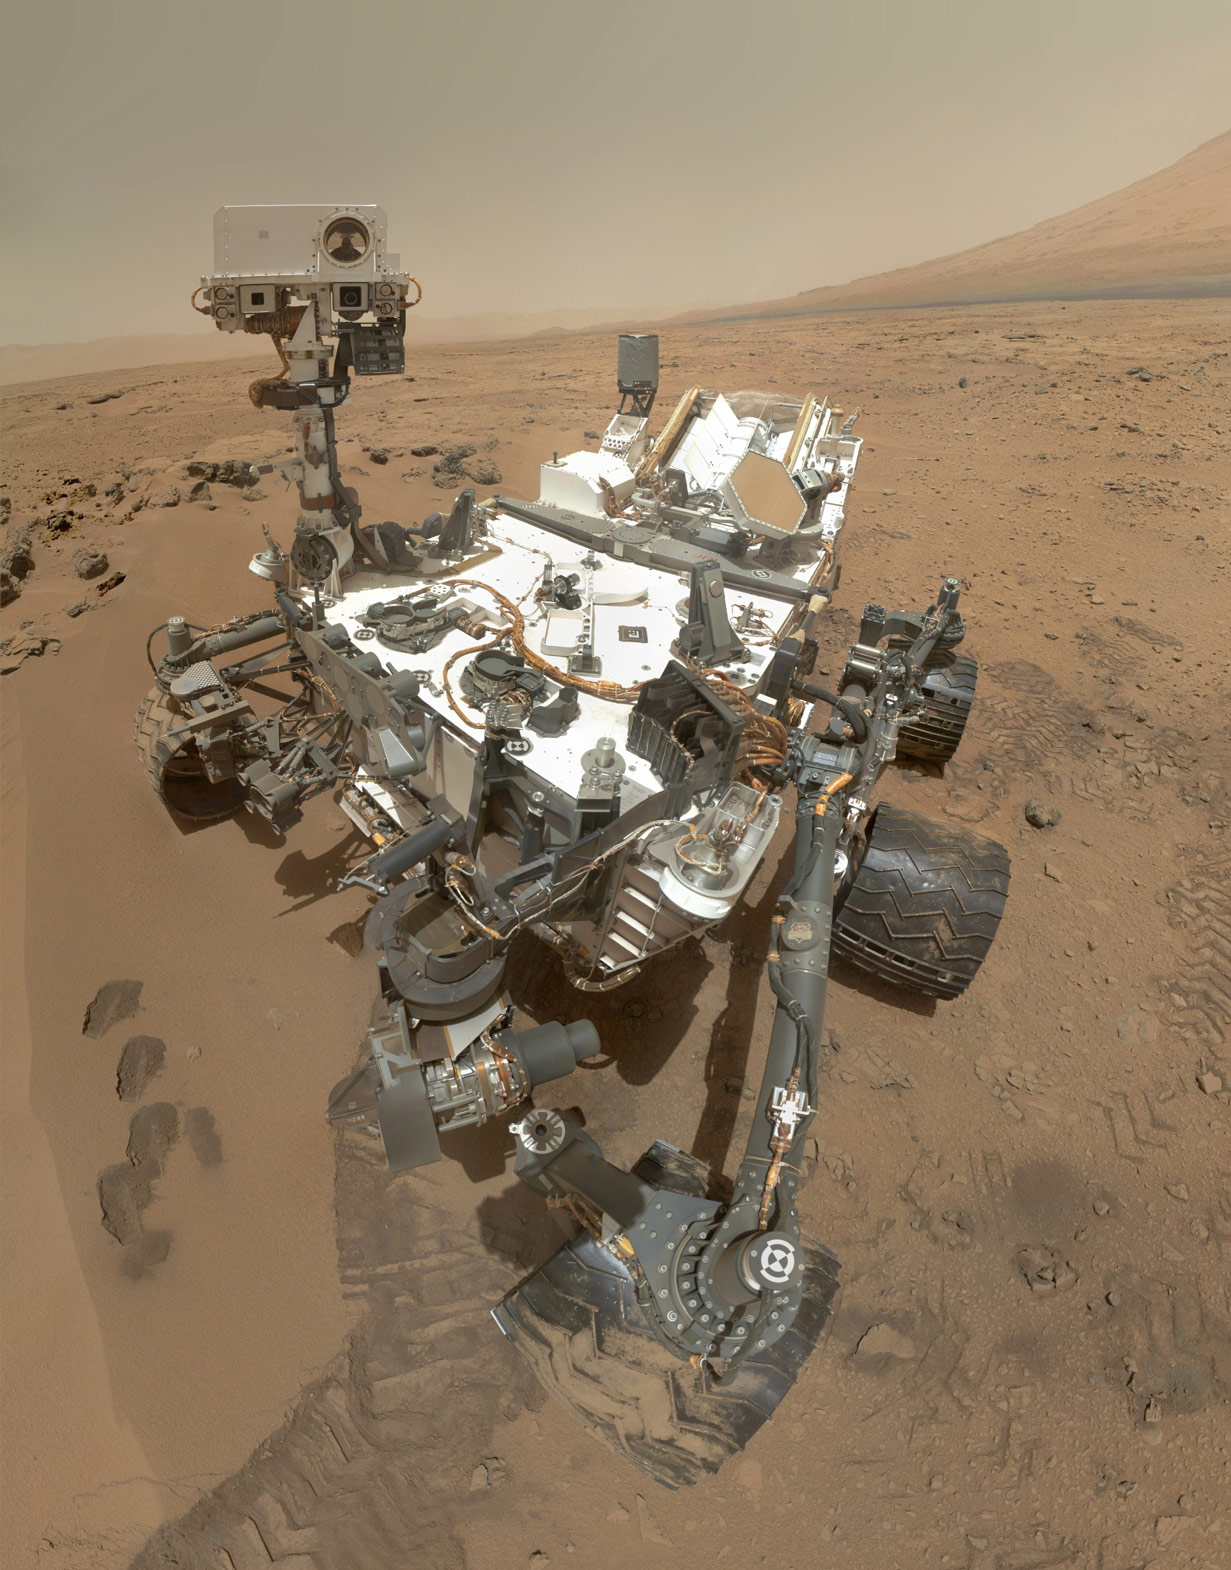 Motiv Space Systems Mars Rover